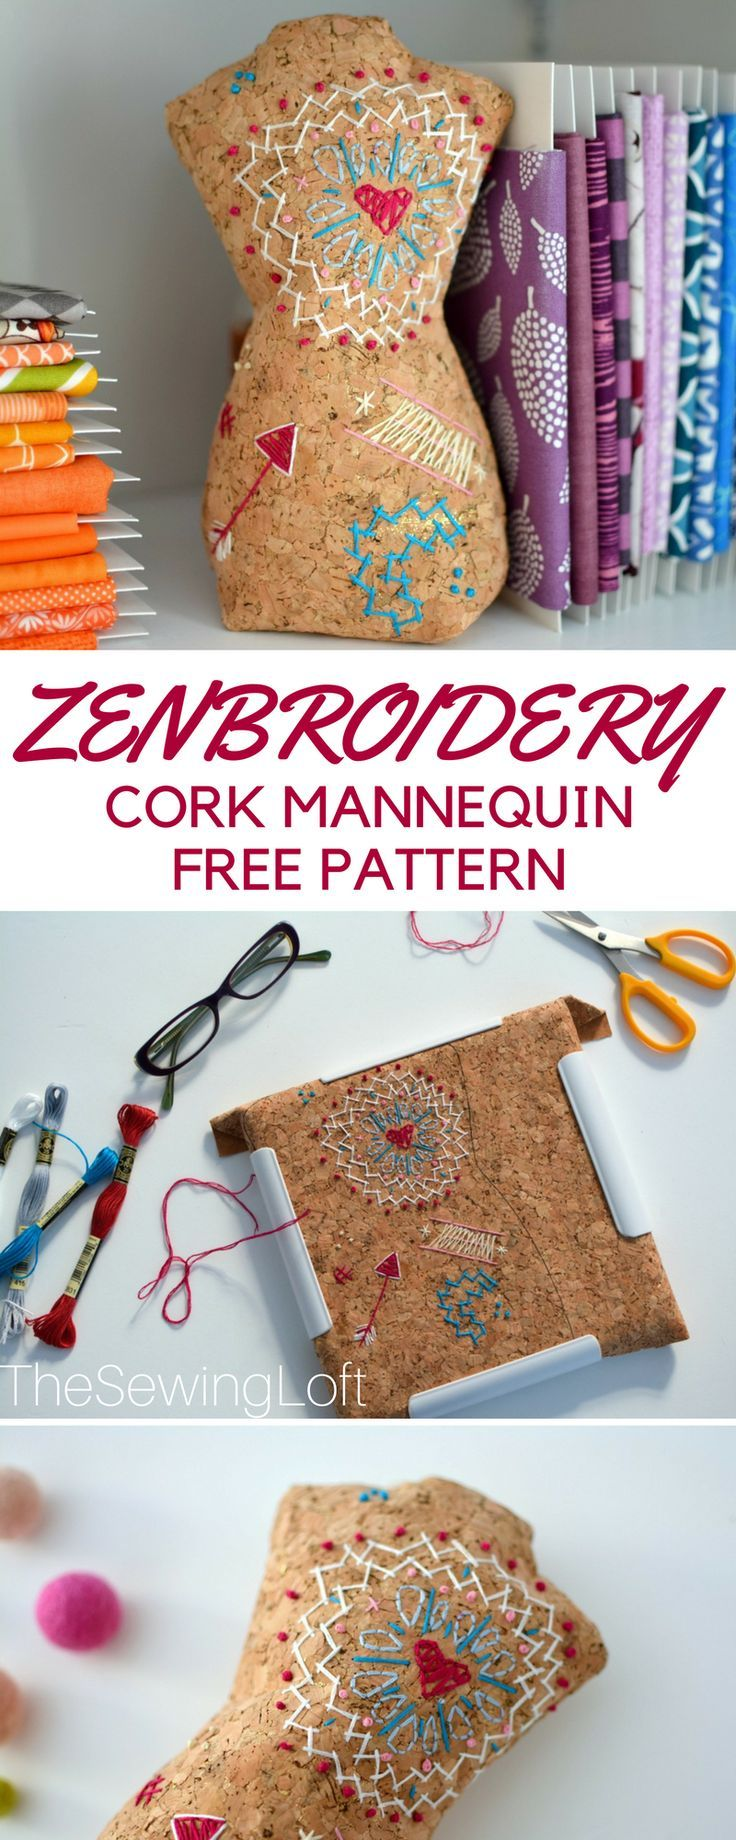 Ever think about using cork fabric to sew on? It's pretty cool especially for zenbroidery. Grab this free DIY mannequin pattern and make one today.  @commonthreadus